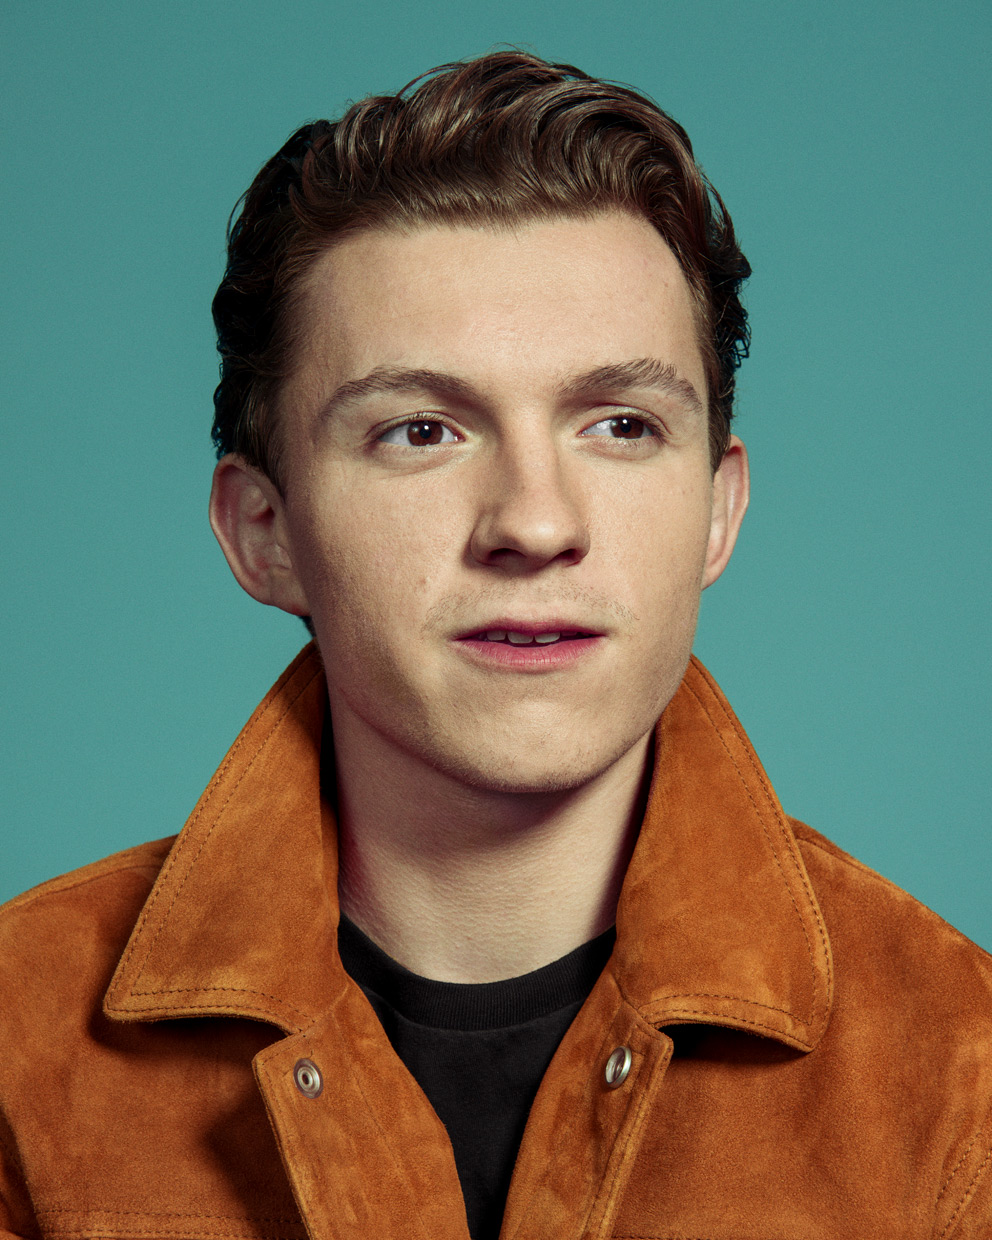 Tom Holland, actor. People Magazine.